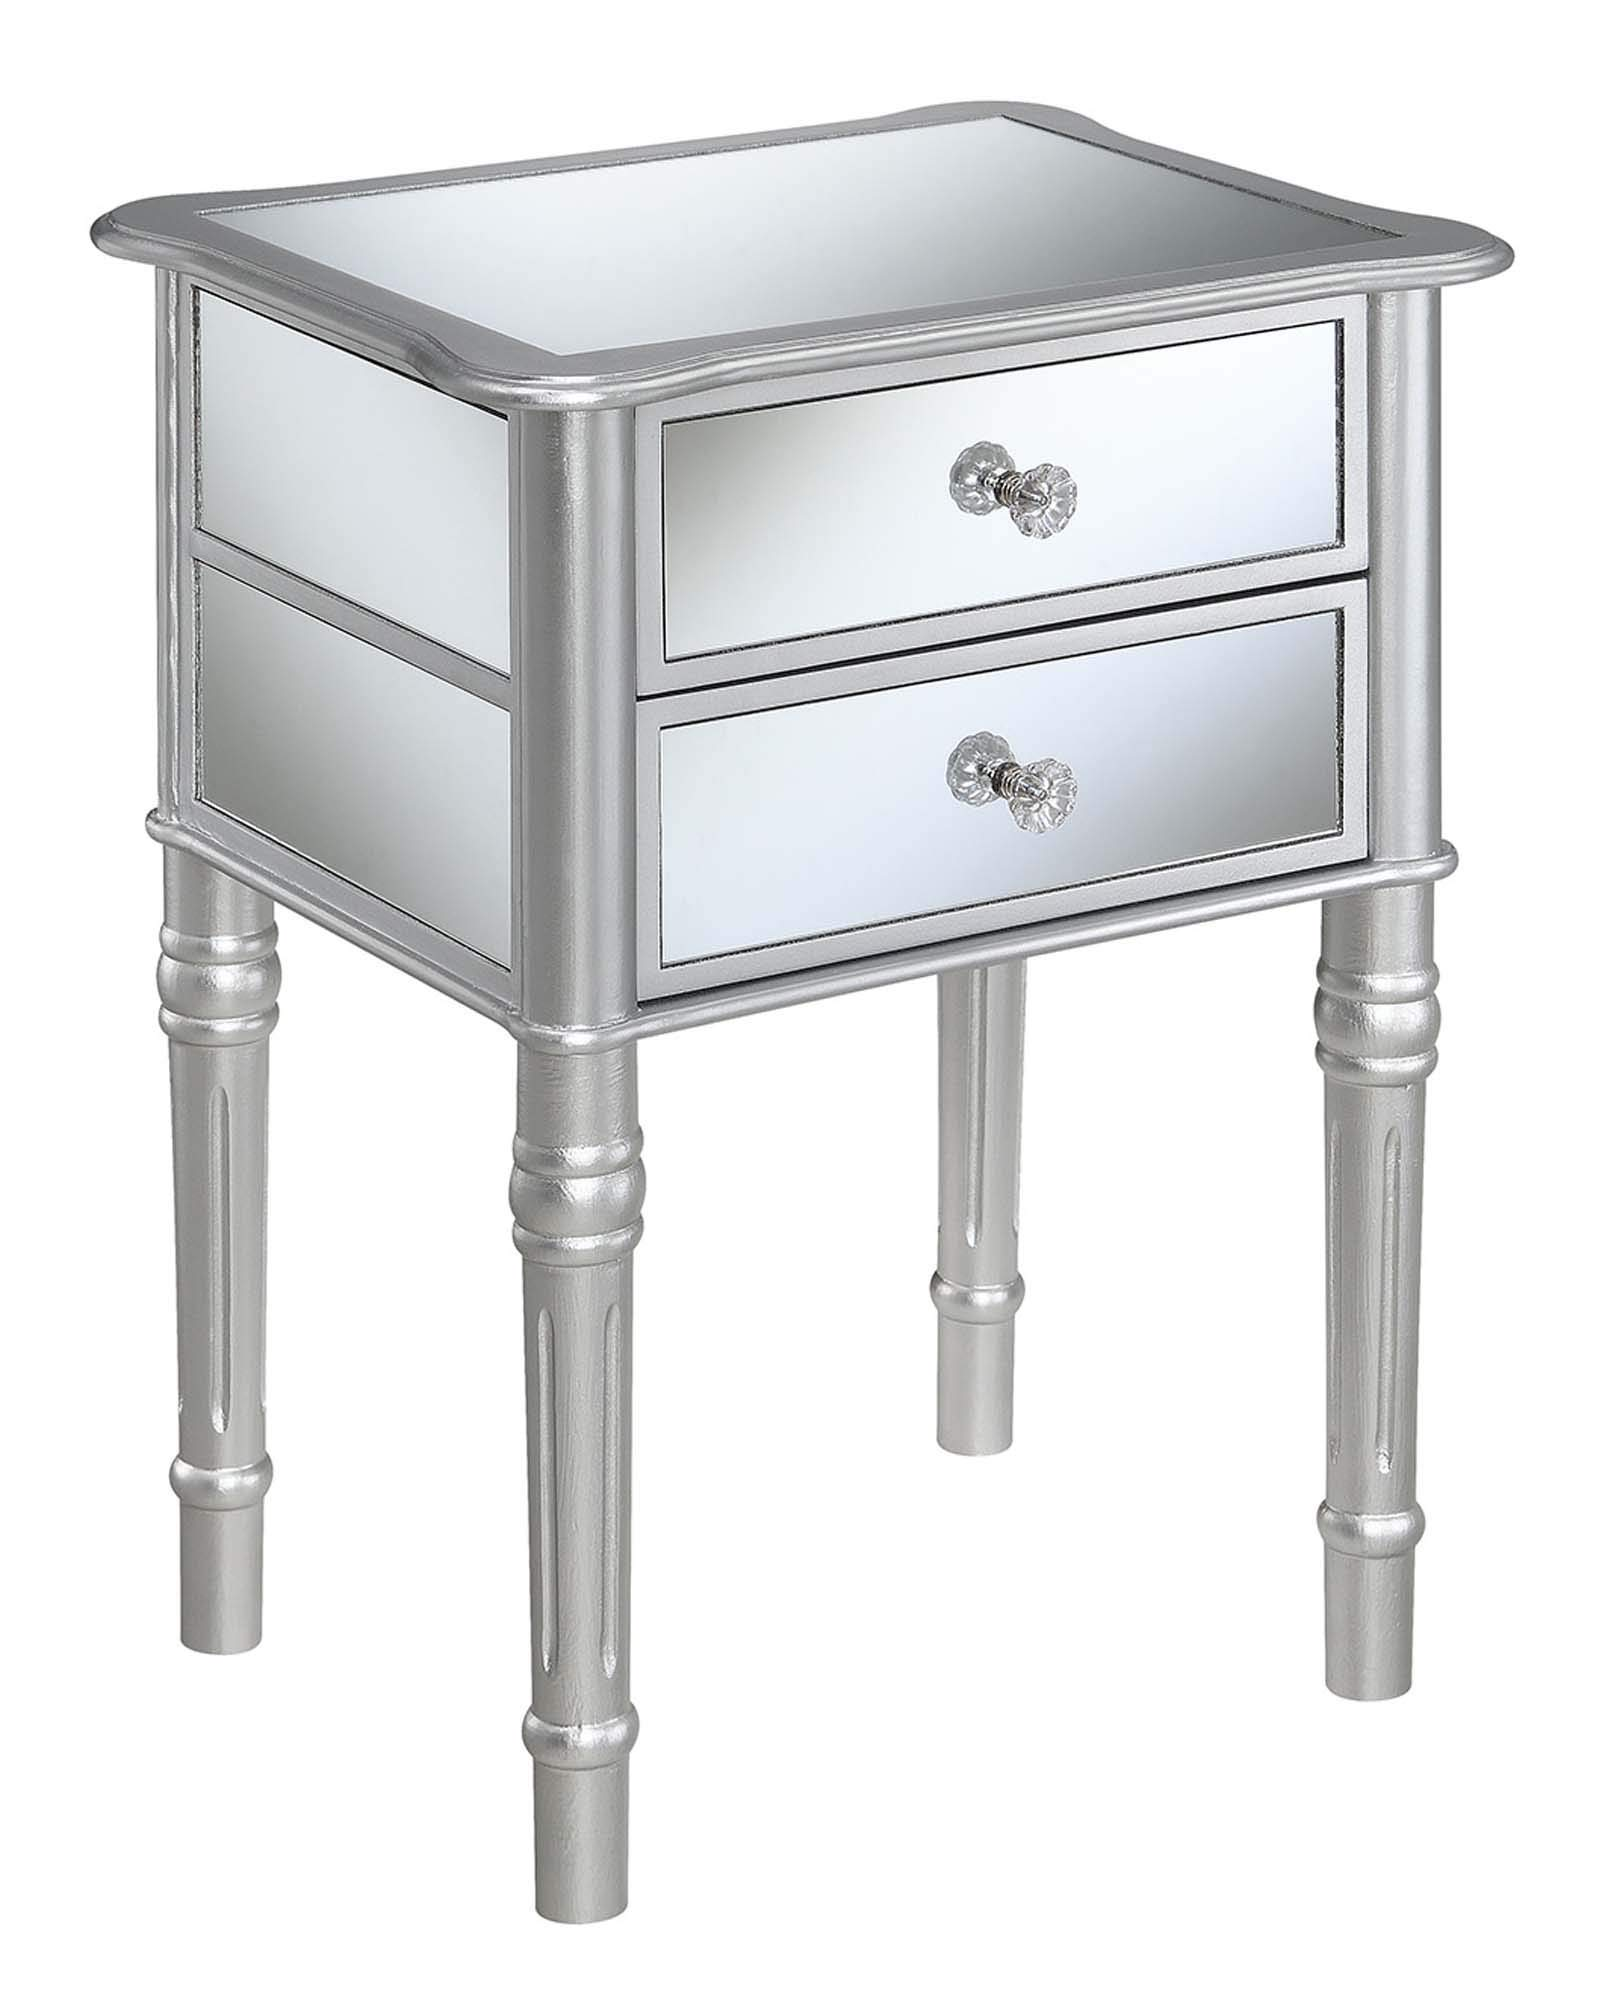 Convenience Concepts 413745SS Gold Coast Mayfair End Table, Silver/Mirror (Renewed) by Convenience Concepts